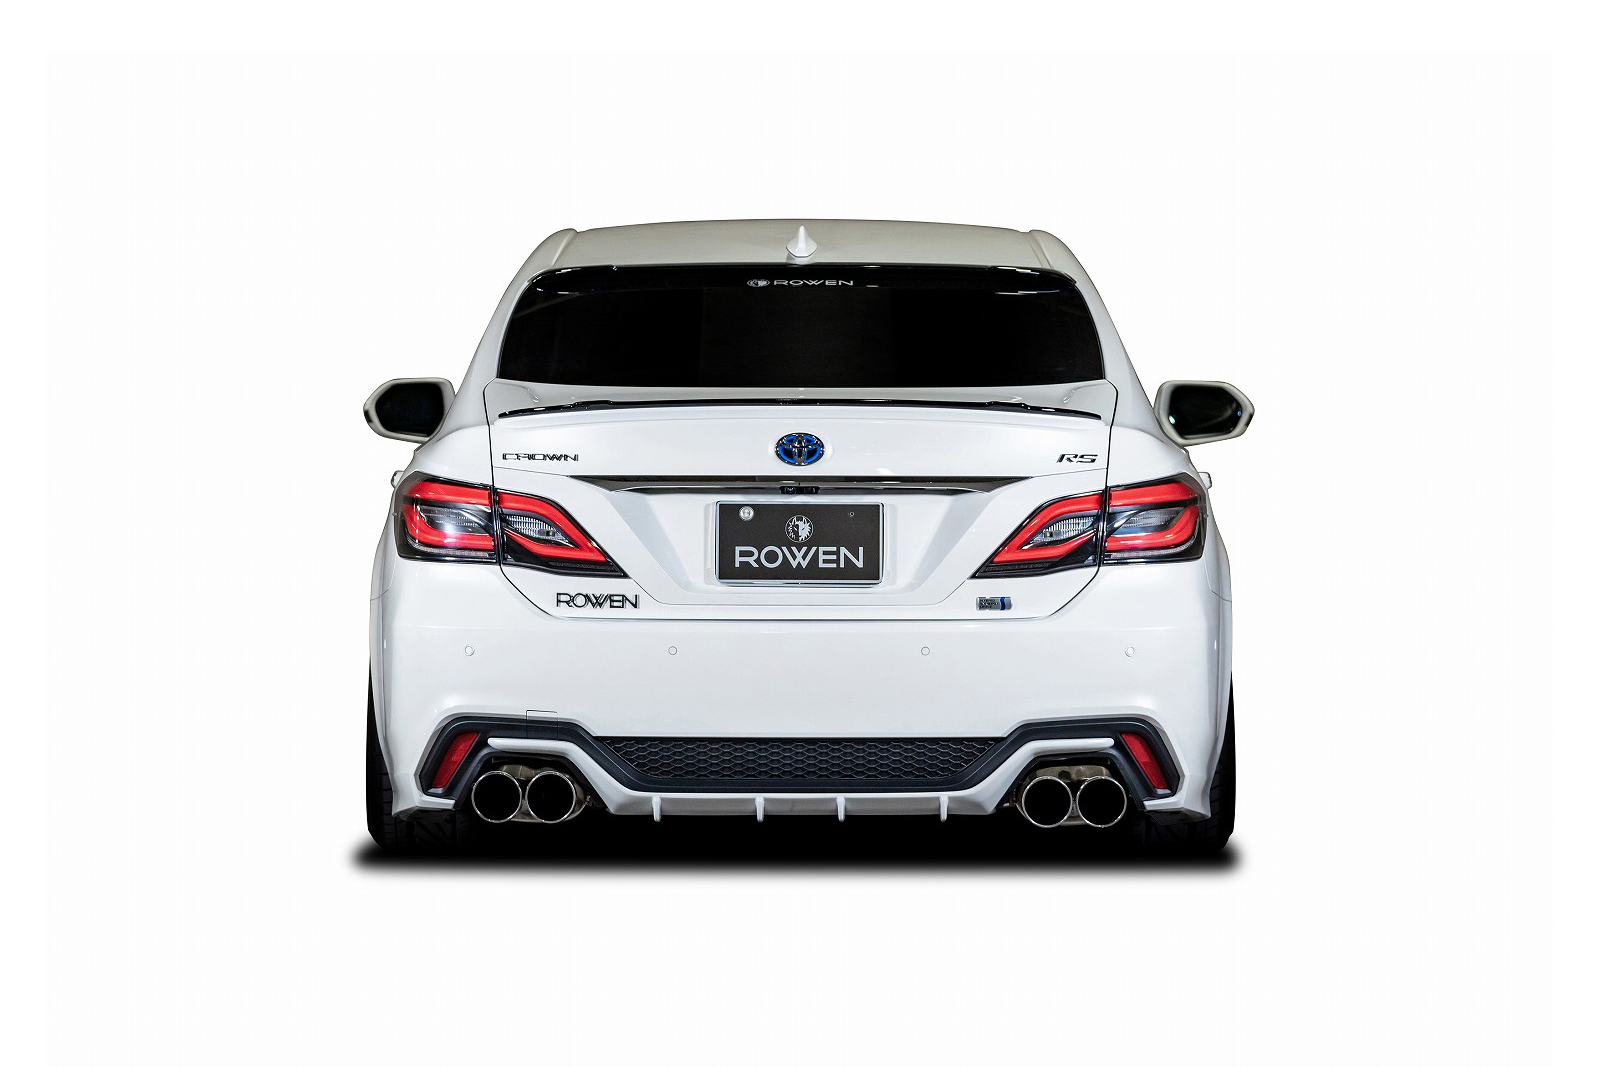 Rowen body kit for Toyota 220 CROWN RS latest model